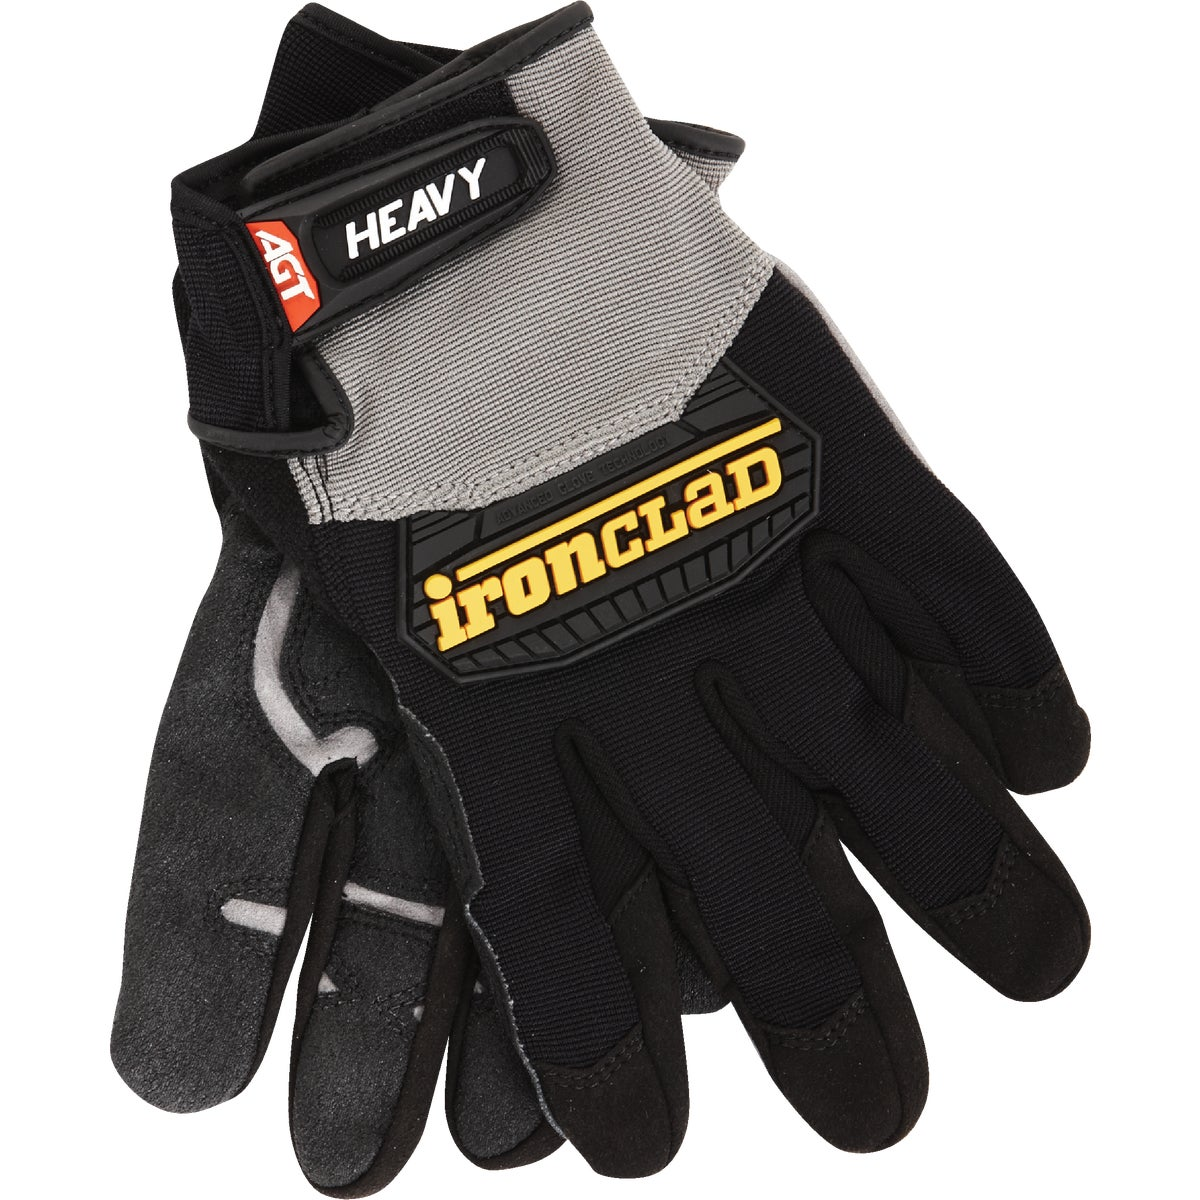 XL HEAVY UTILITY GLOVE - HUG-05-XL by Ironclad Performance